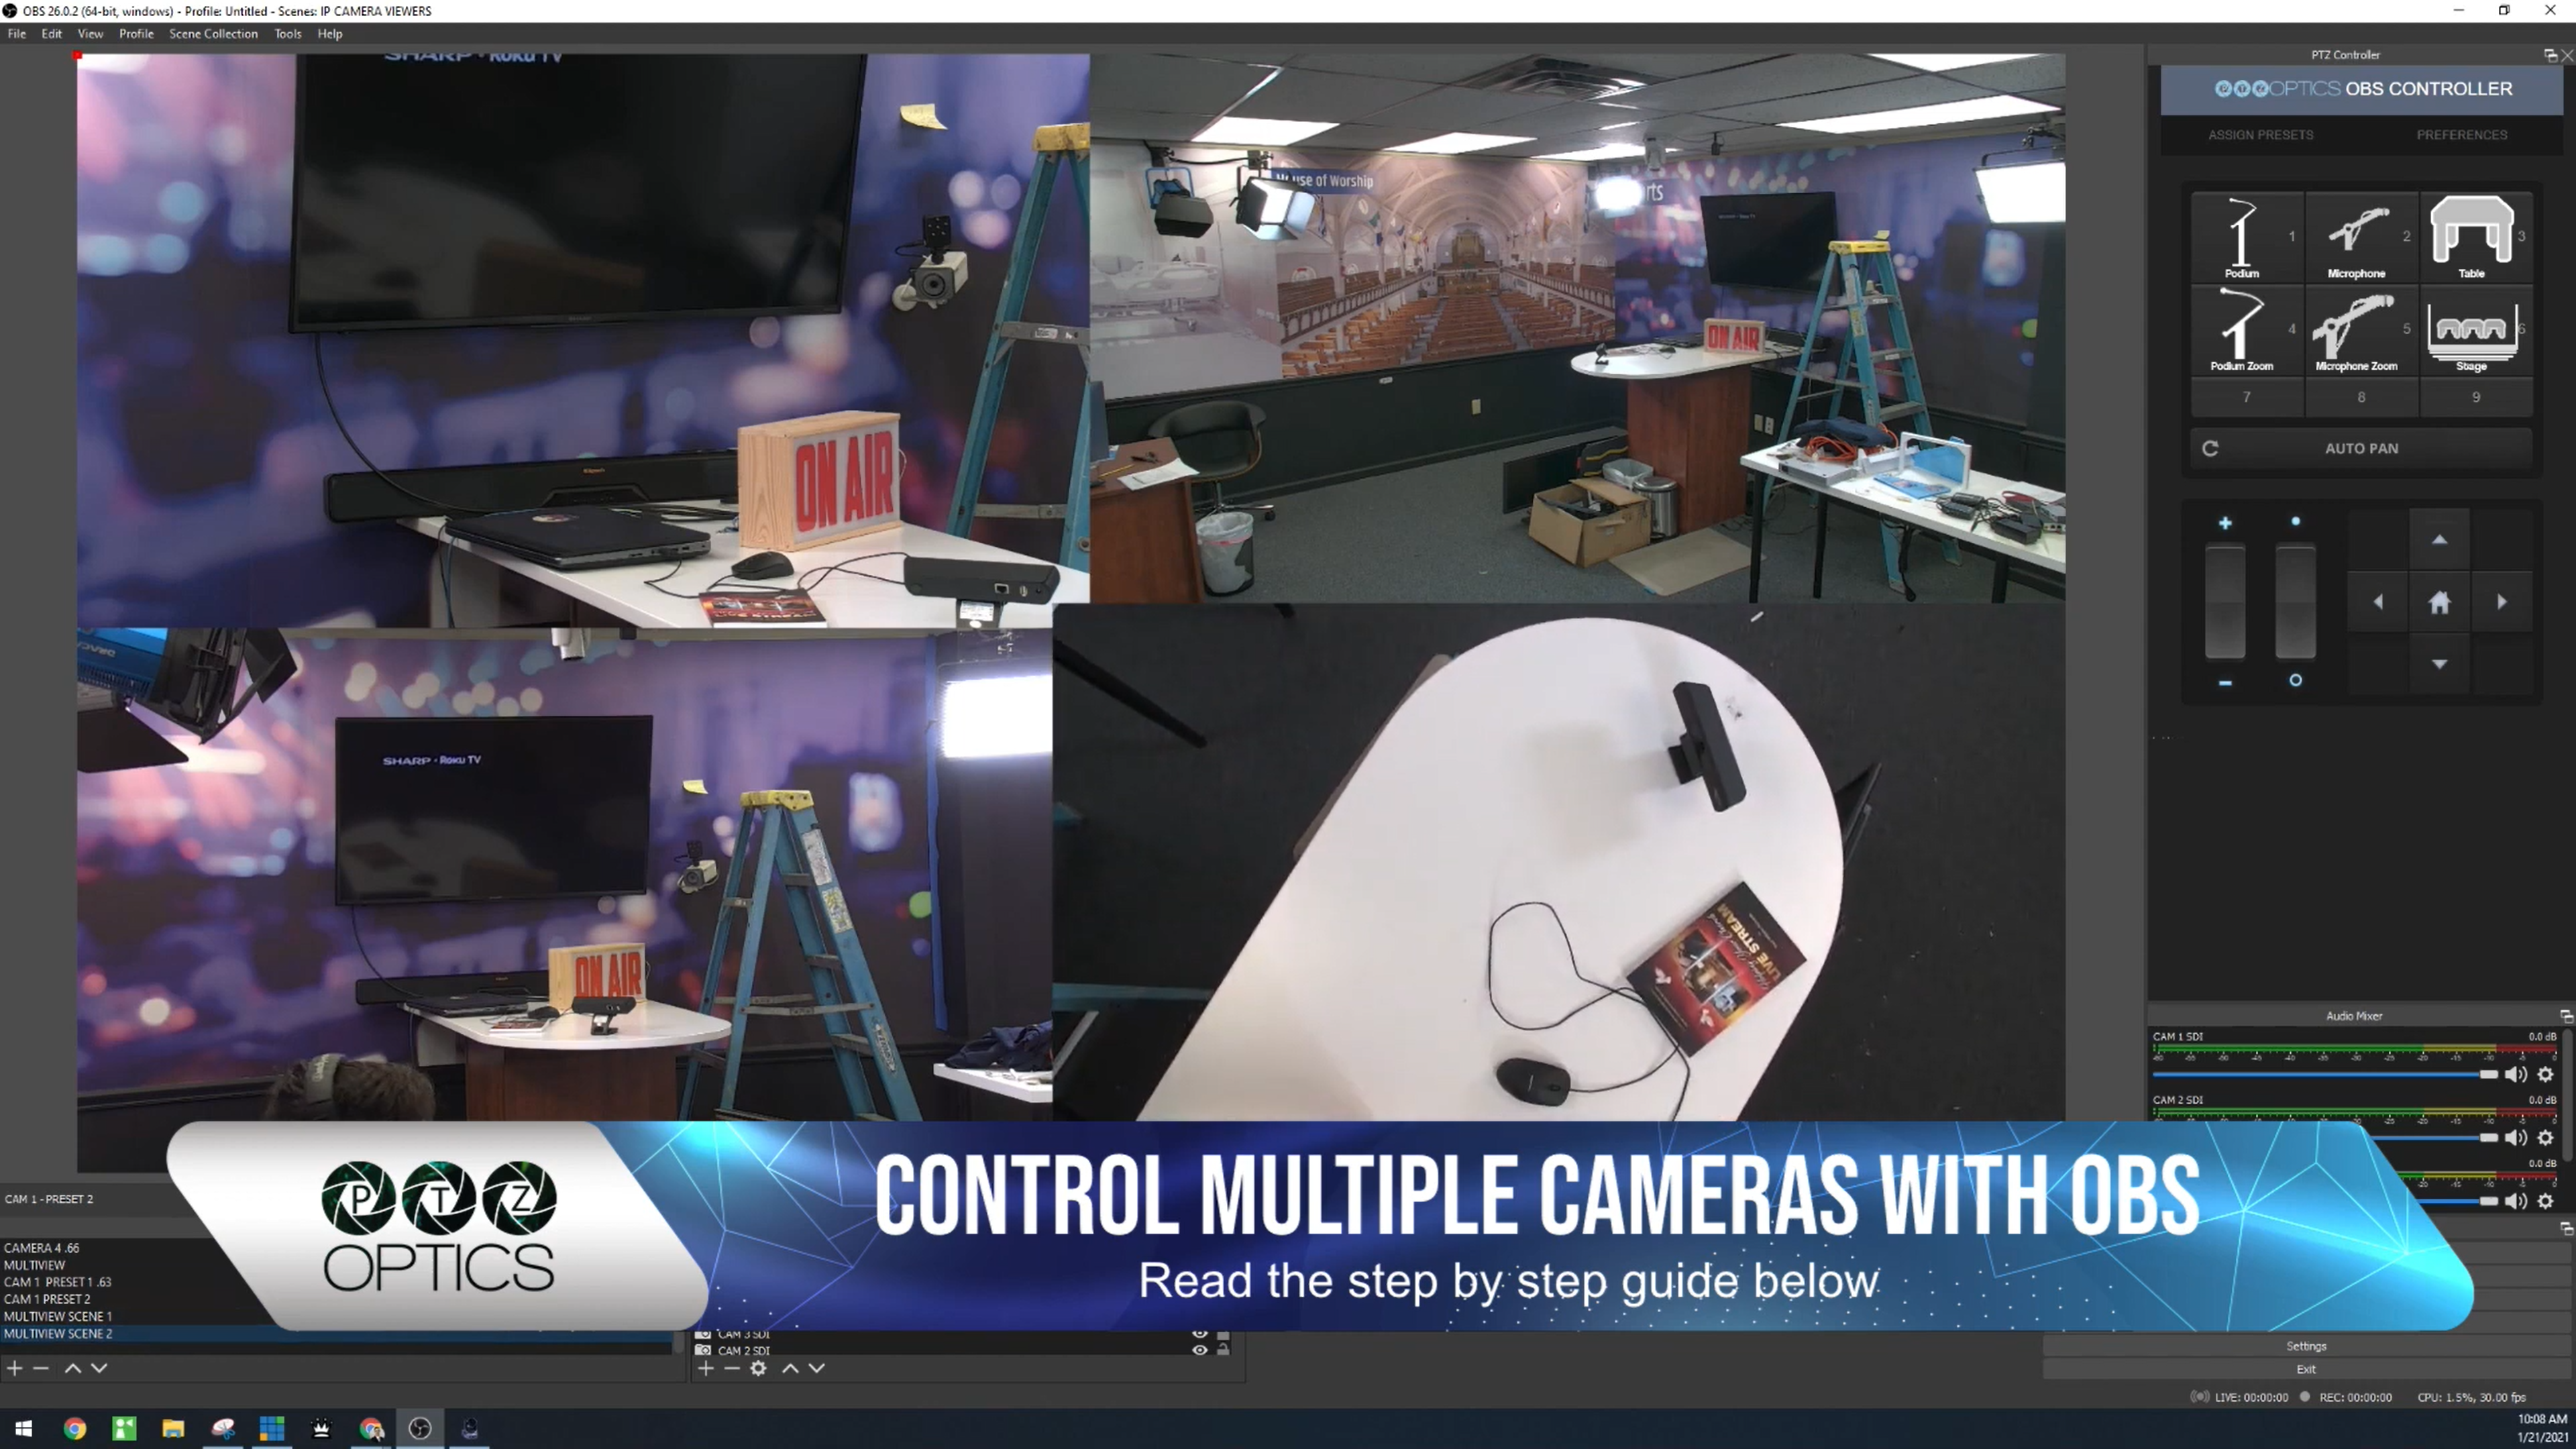 Control multiple cameras with OBS